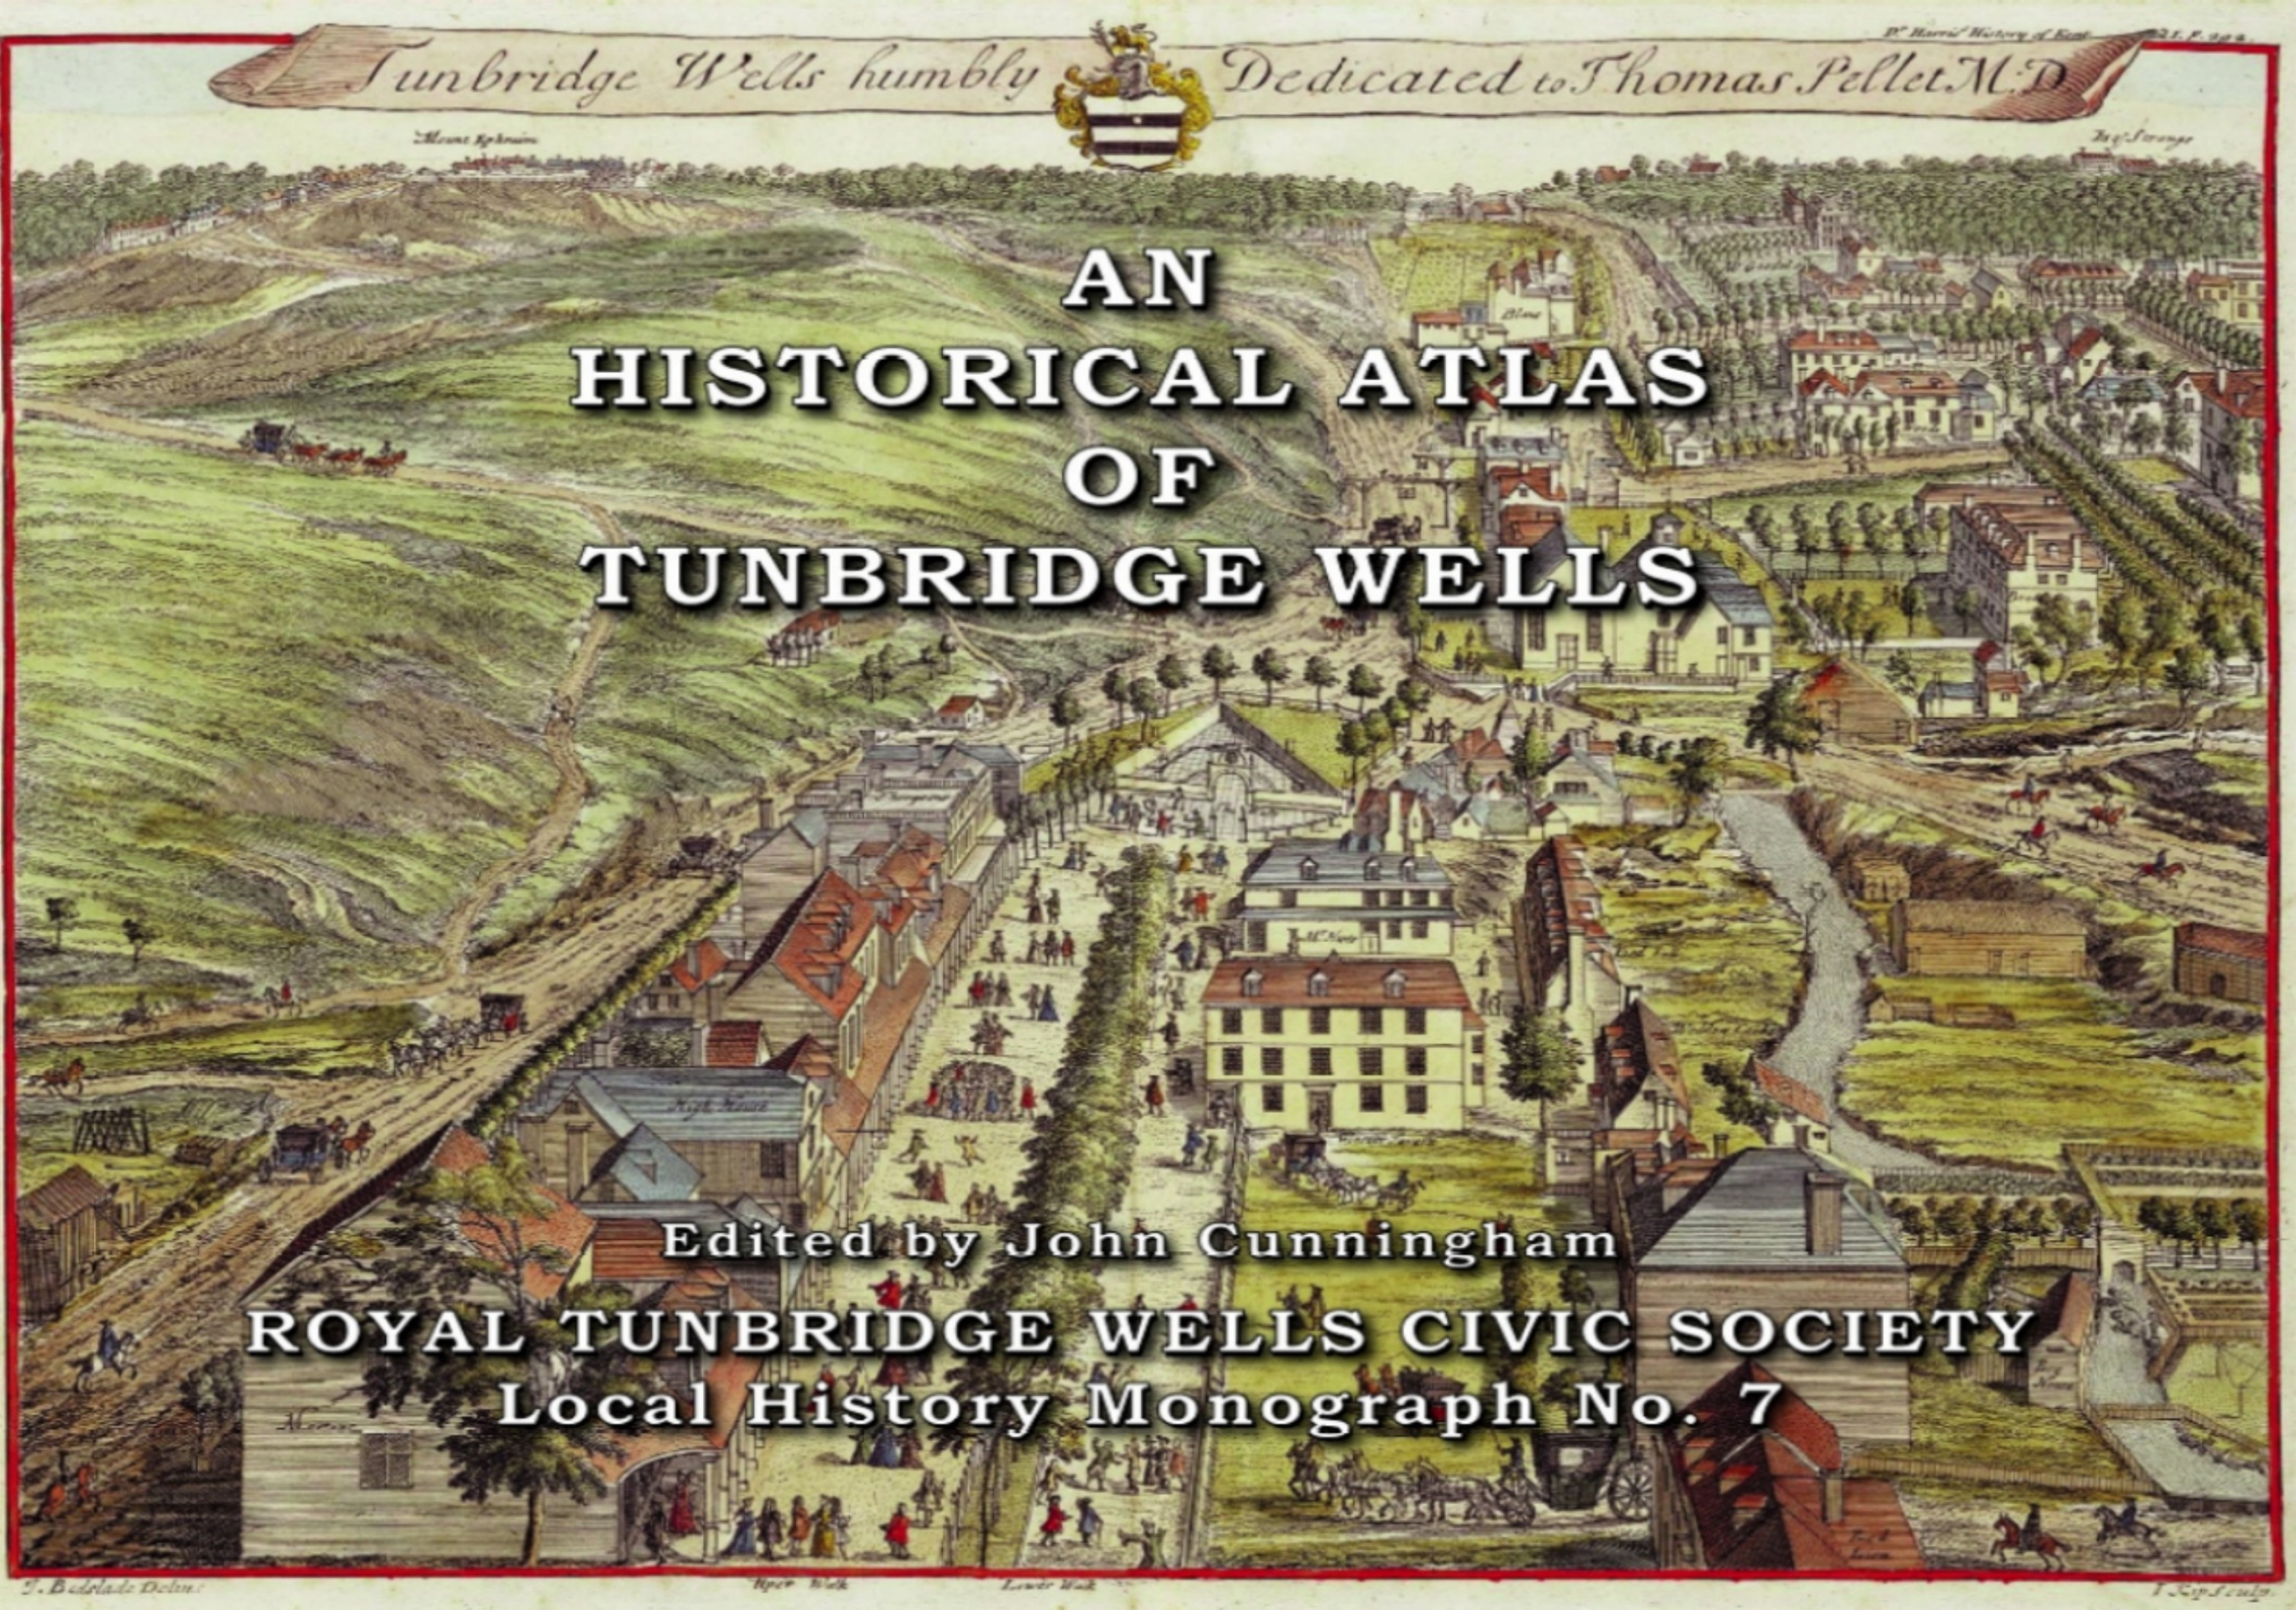 Royal Tunbridge Wells Civic Society